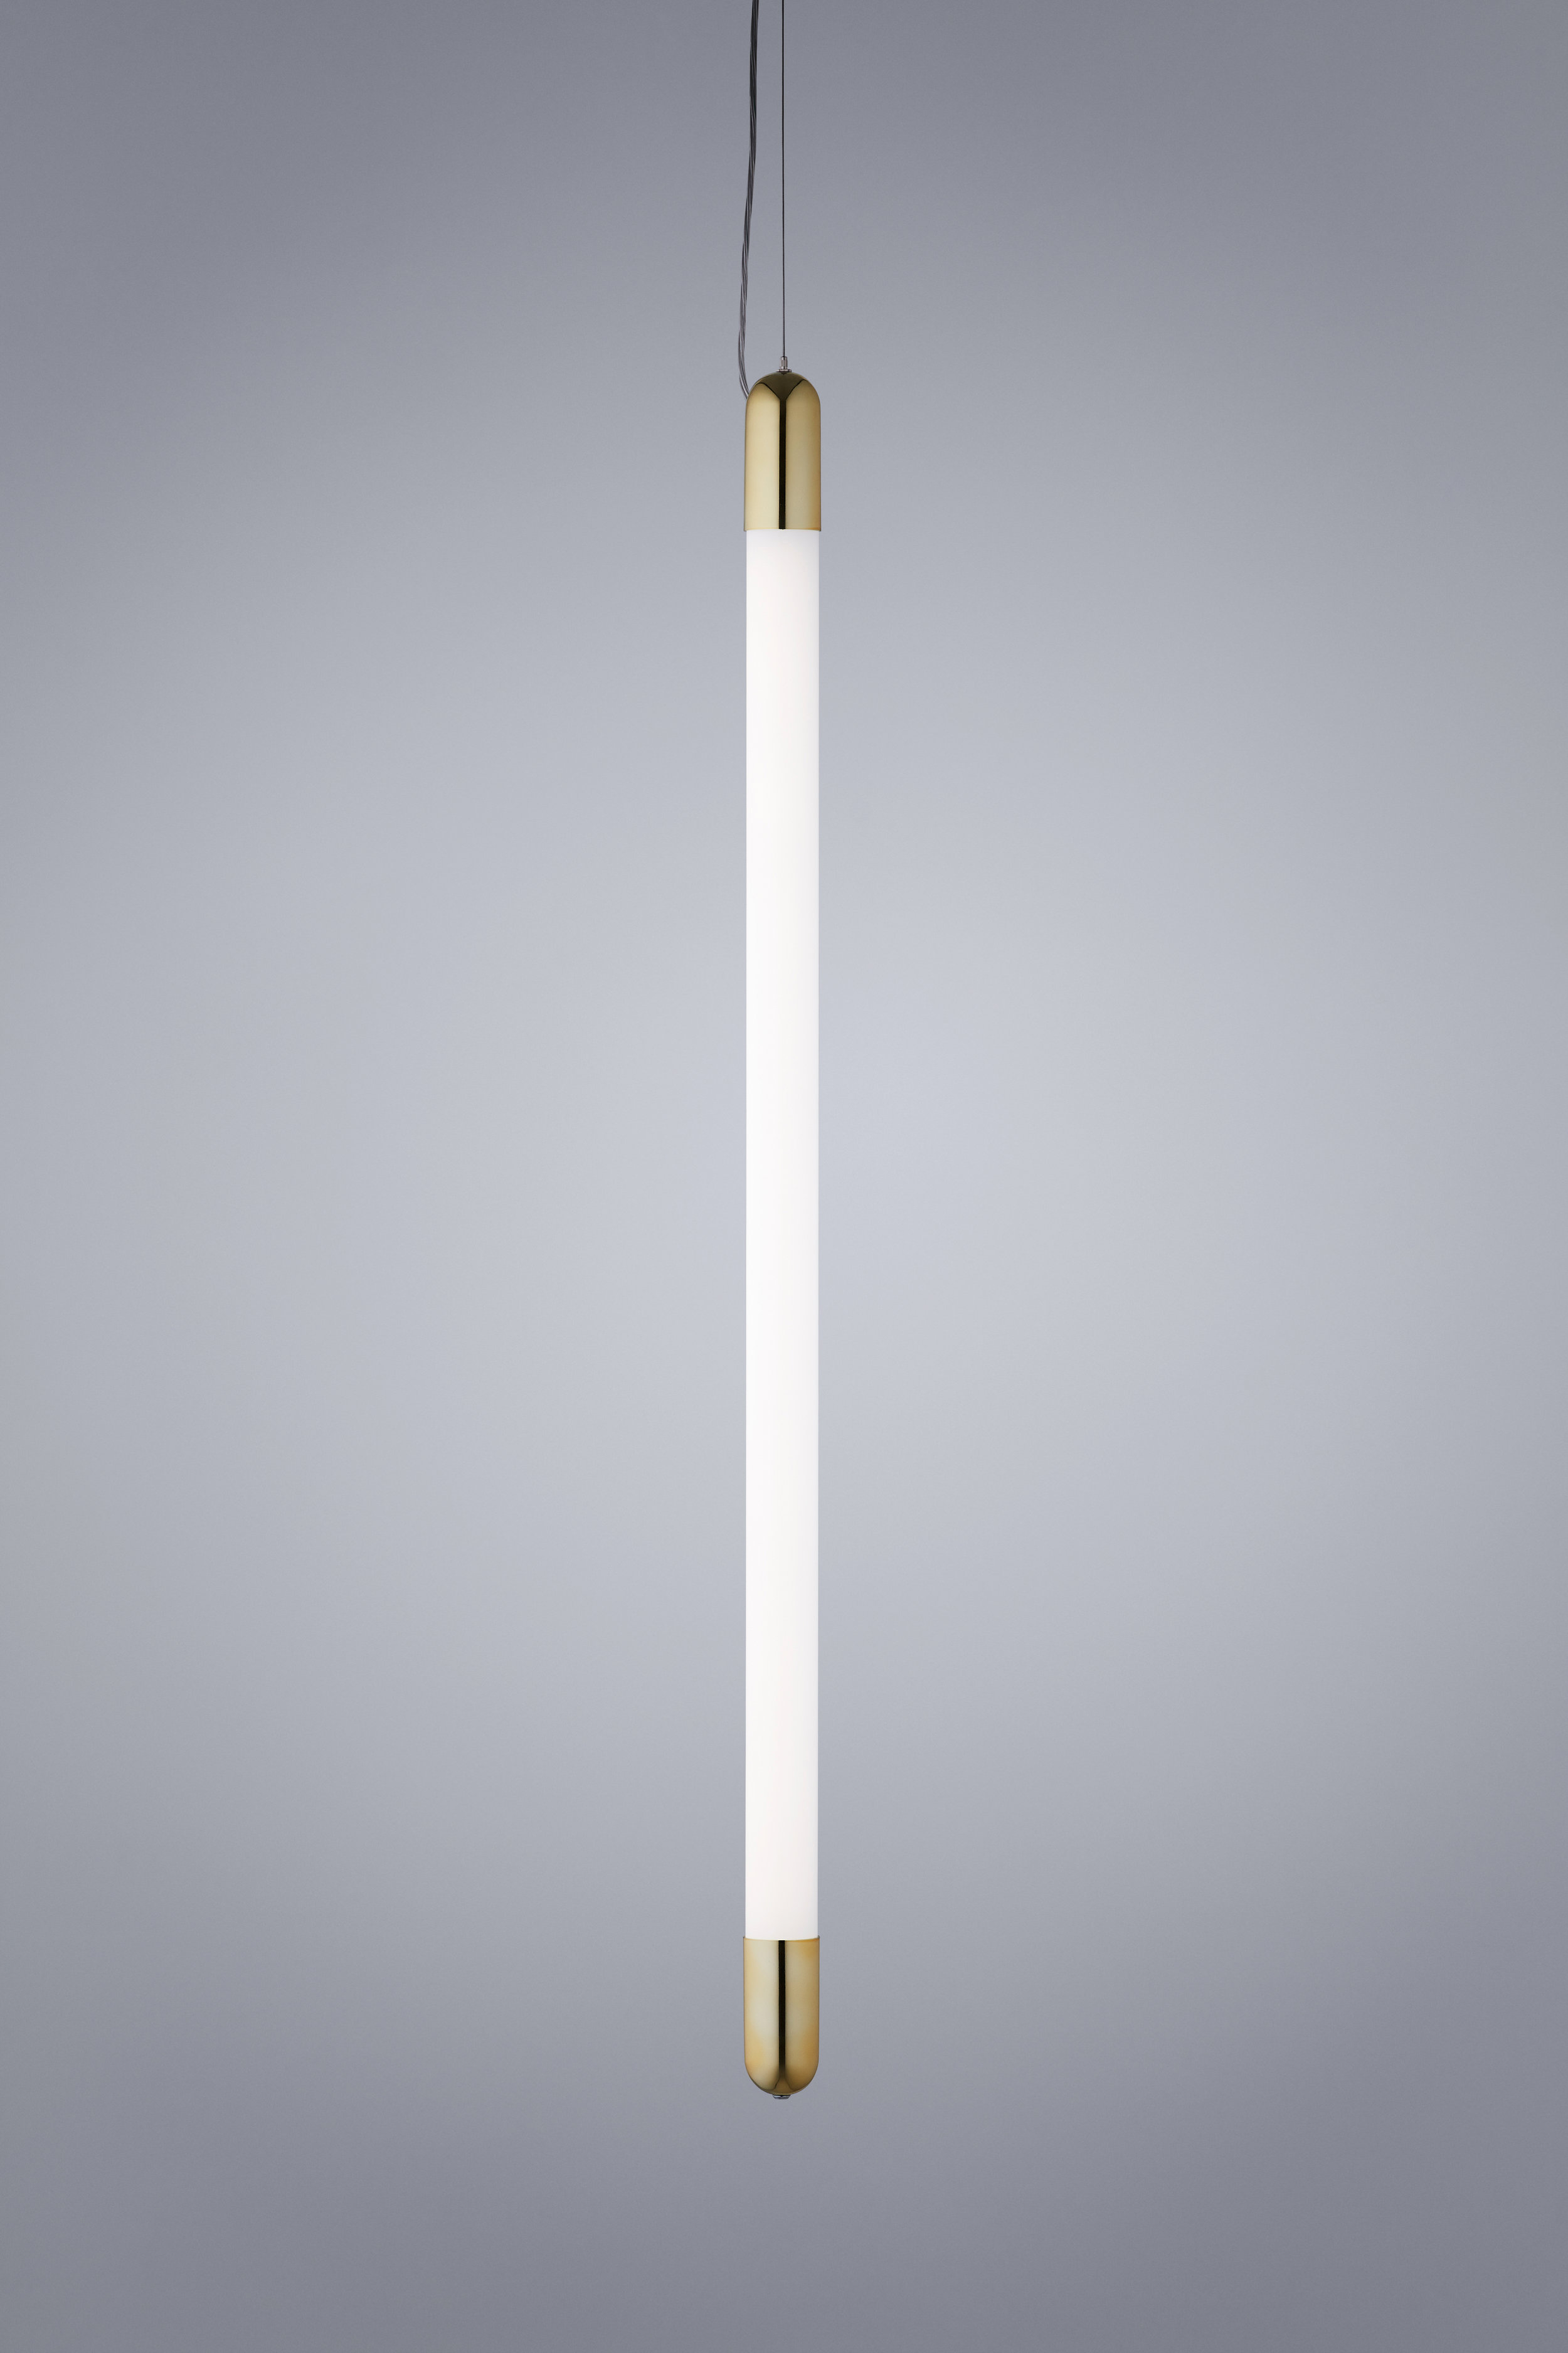 ISM Objects_Snag vertical long bright brass_Pendant.jpg